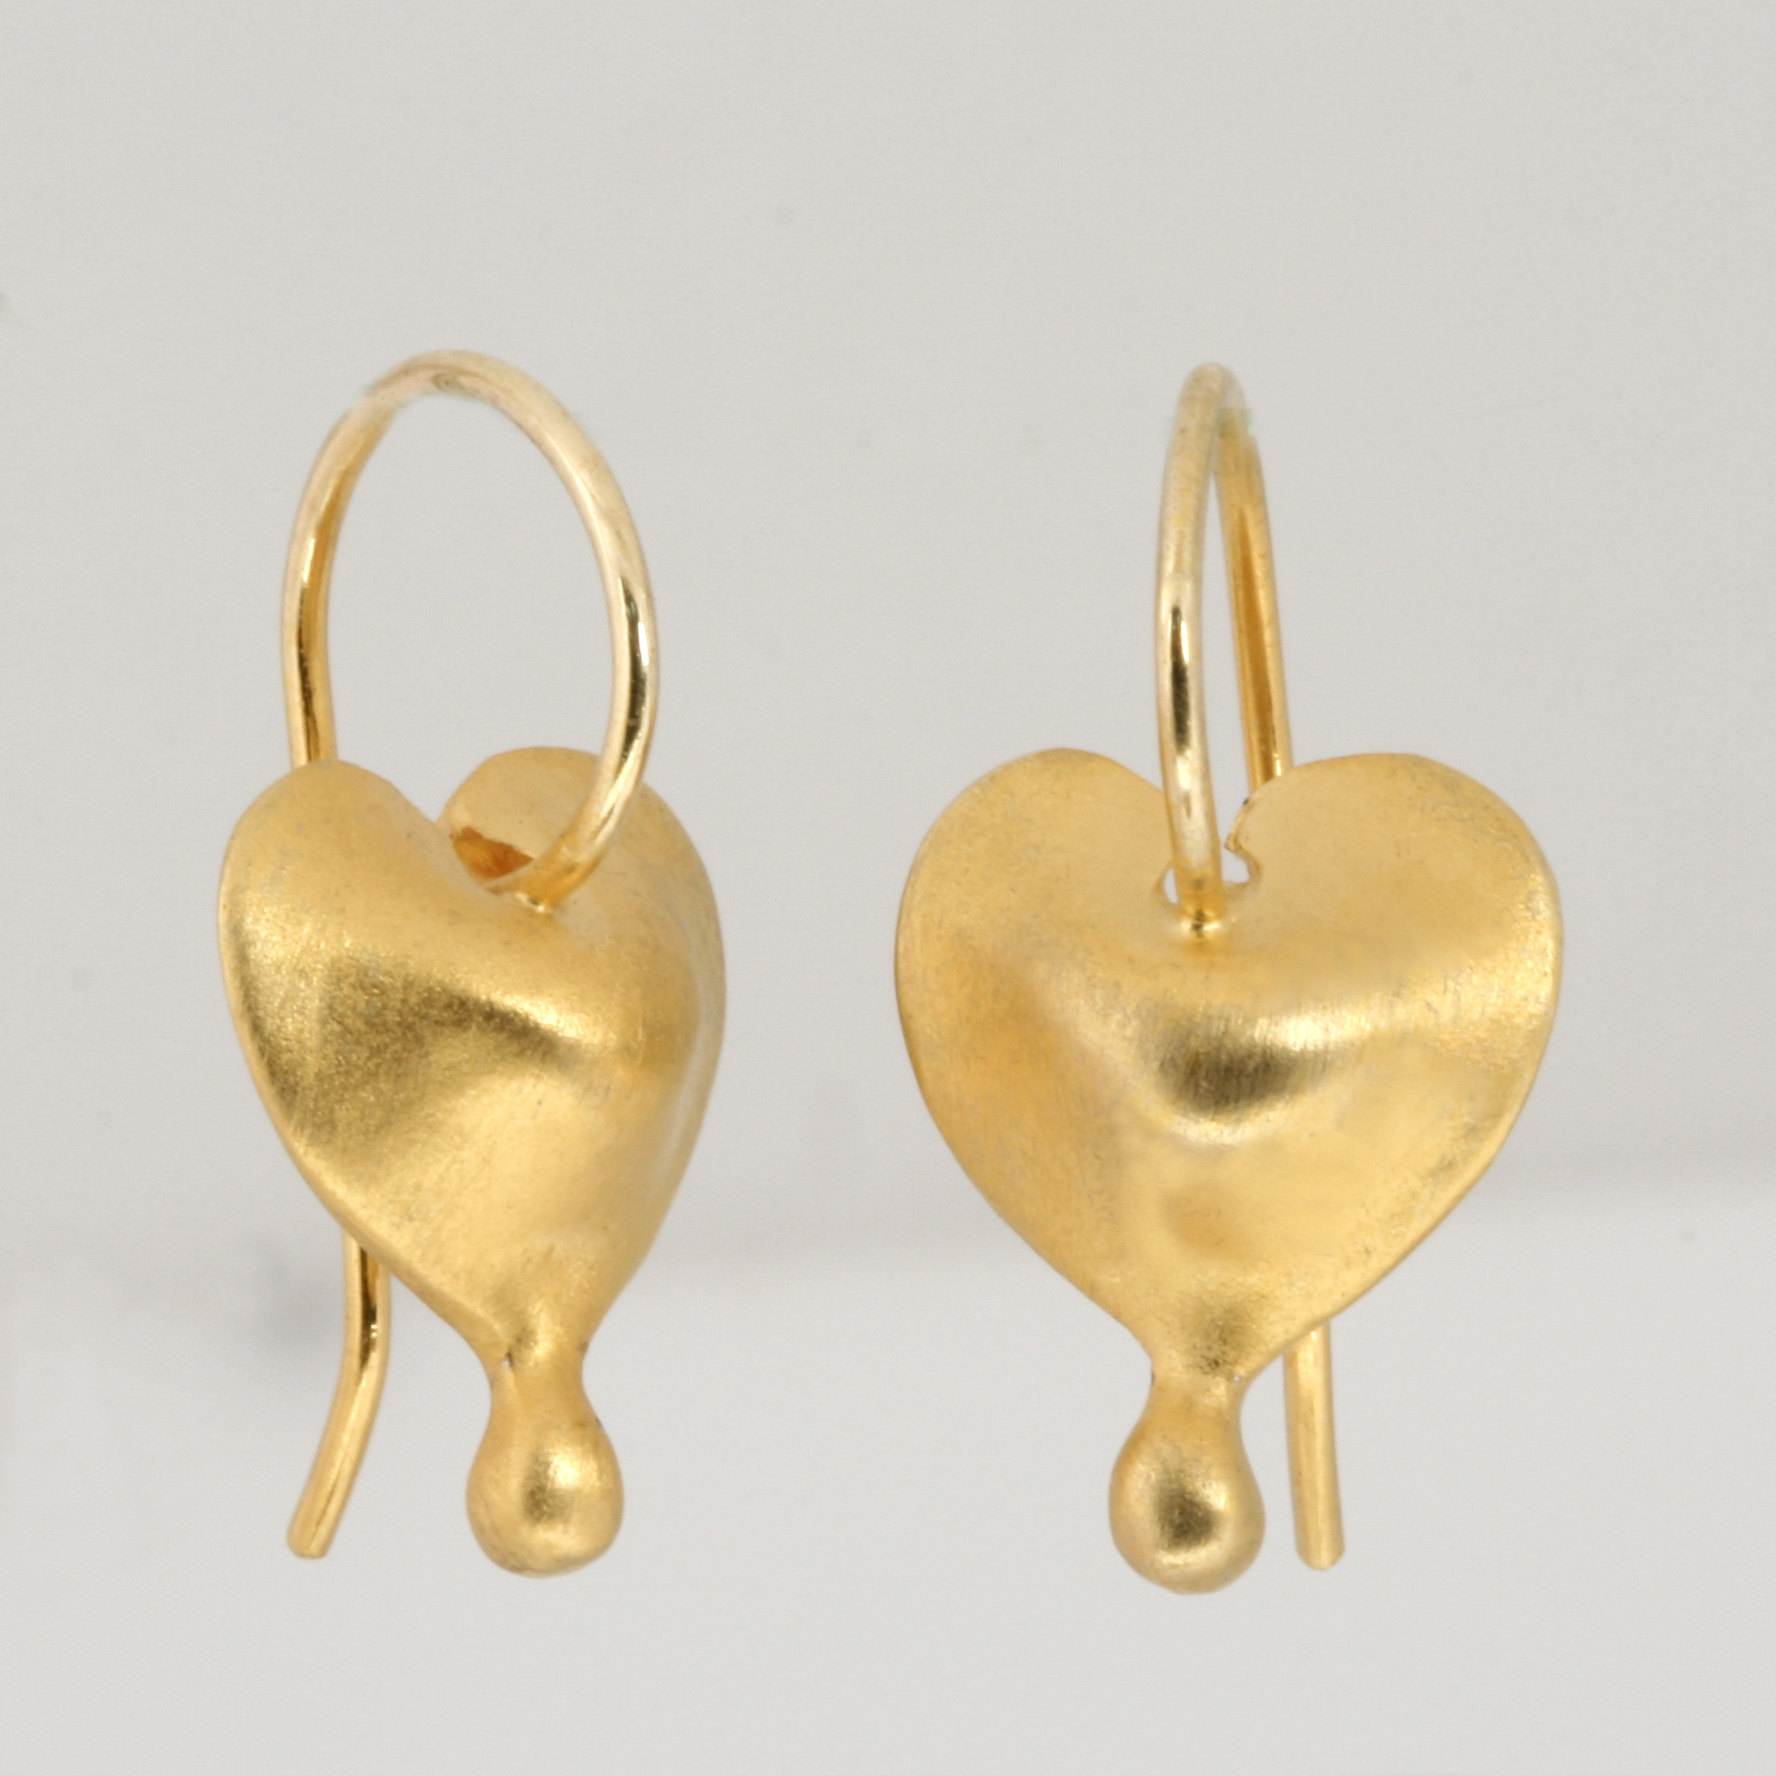 E0186 Bleeding heart seed earrings. Sterling silver and fine gold plate. $395